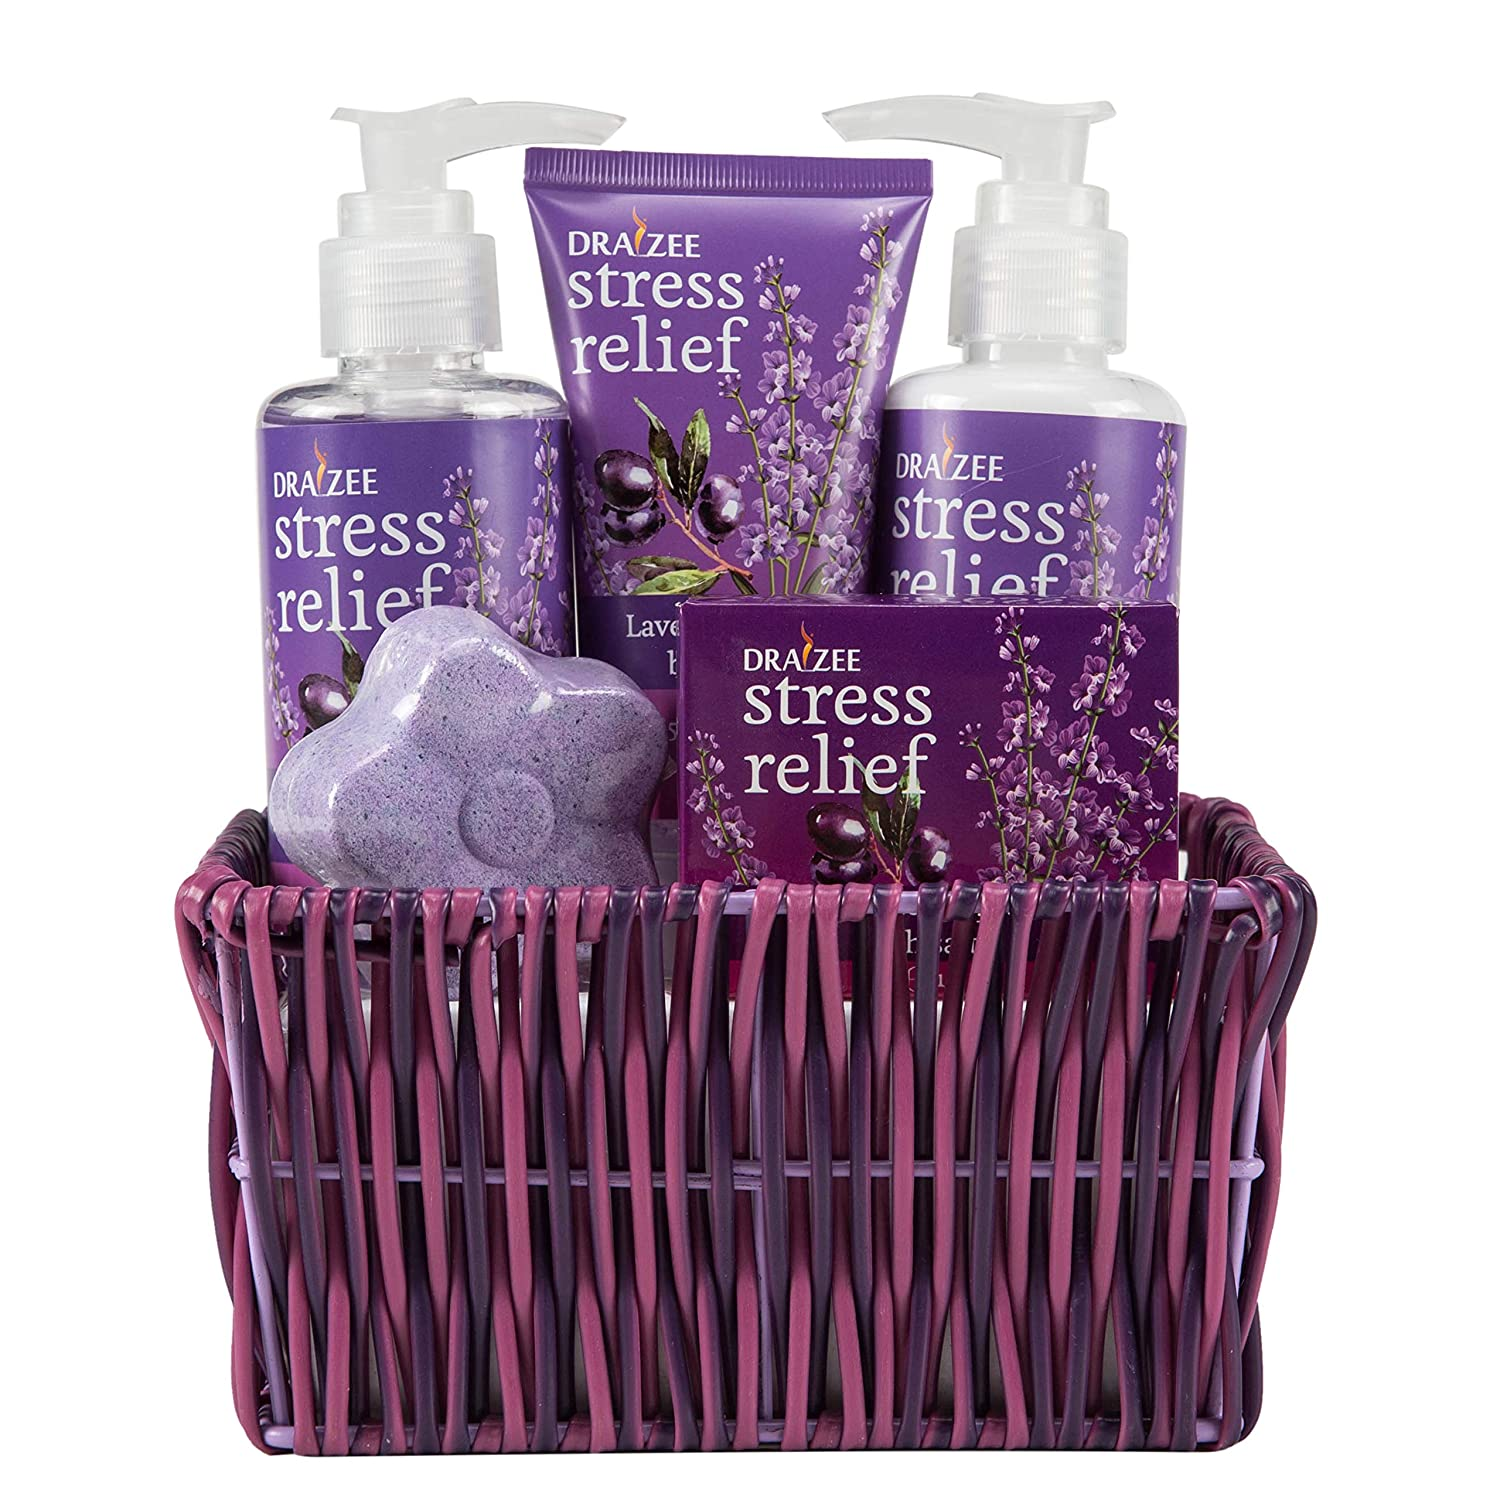 Draizee Spa Luxurious Home Relaxation Lovely Fragrance Gift Bag for Woman (Lavender and Grape, 5 Pieces) - #1 Best Christmas Gift for Women